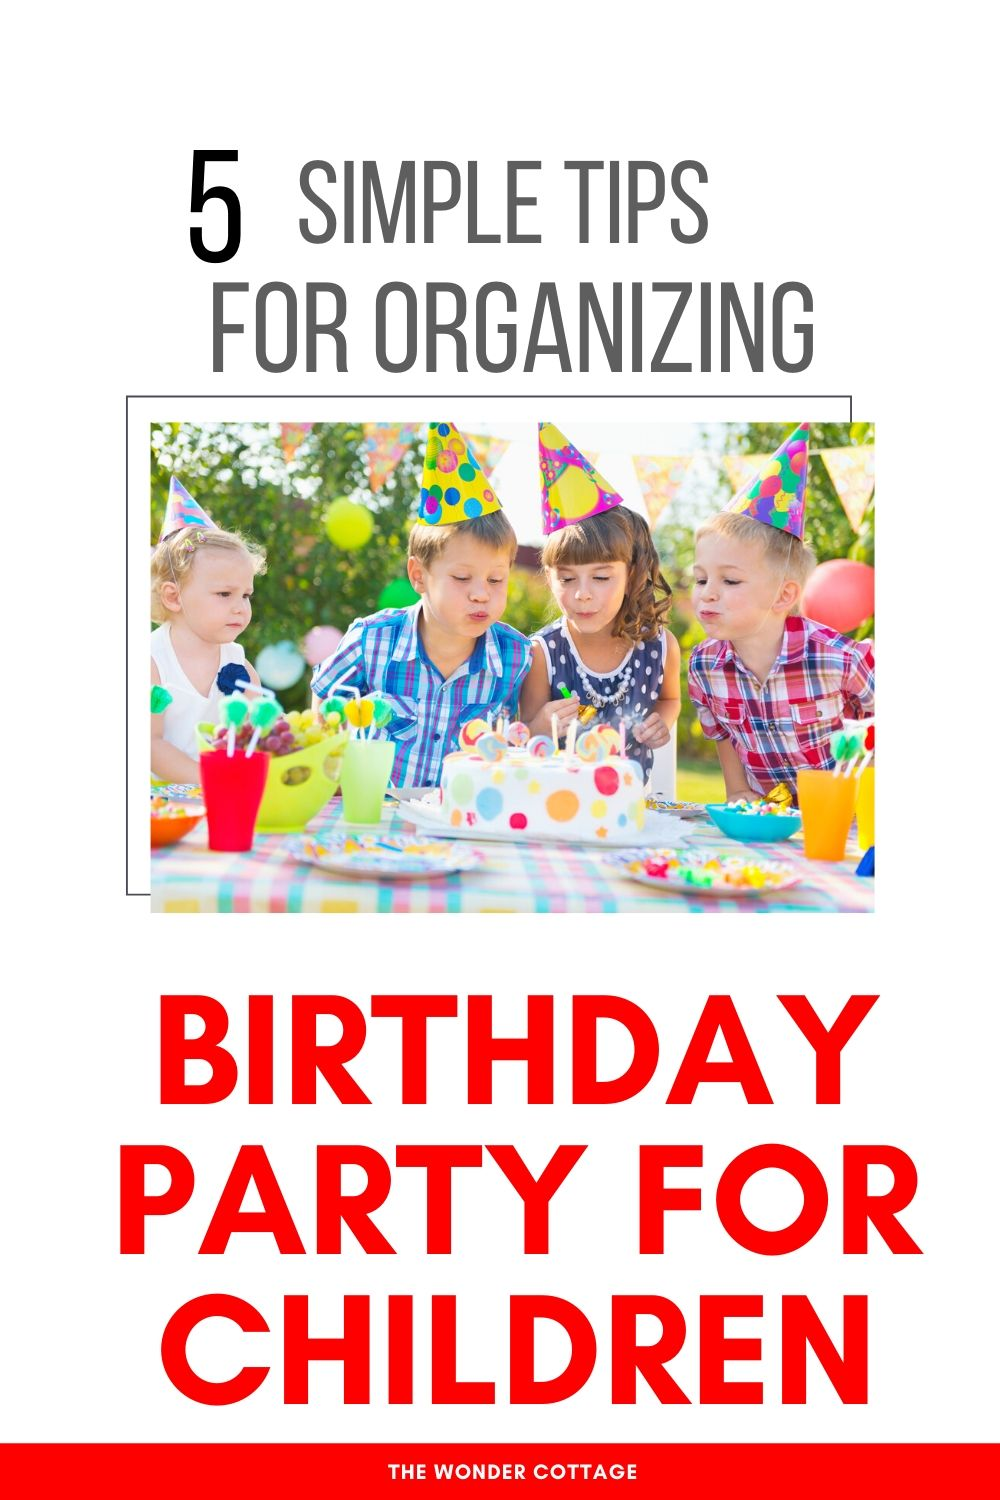 tips for throwing a birthday party for children